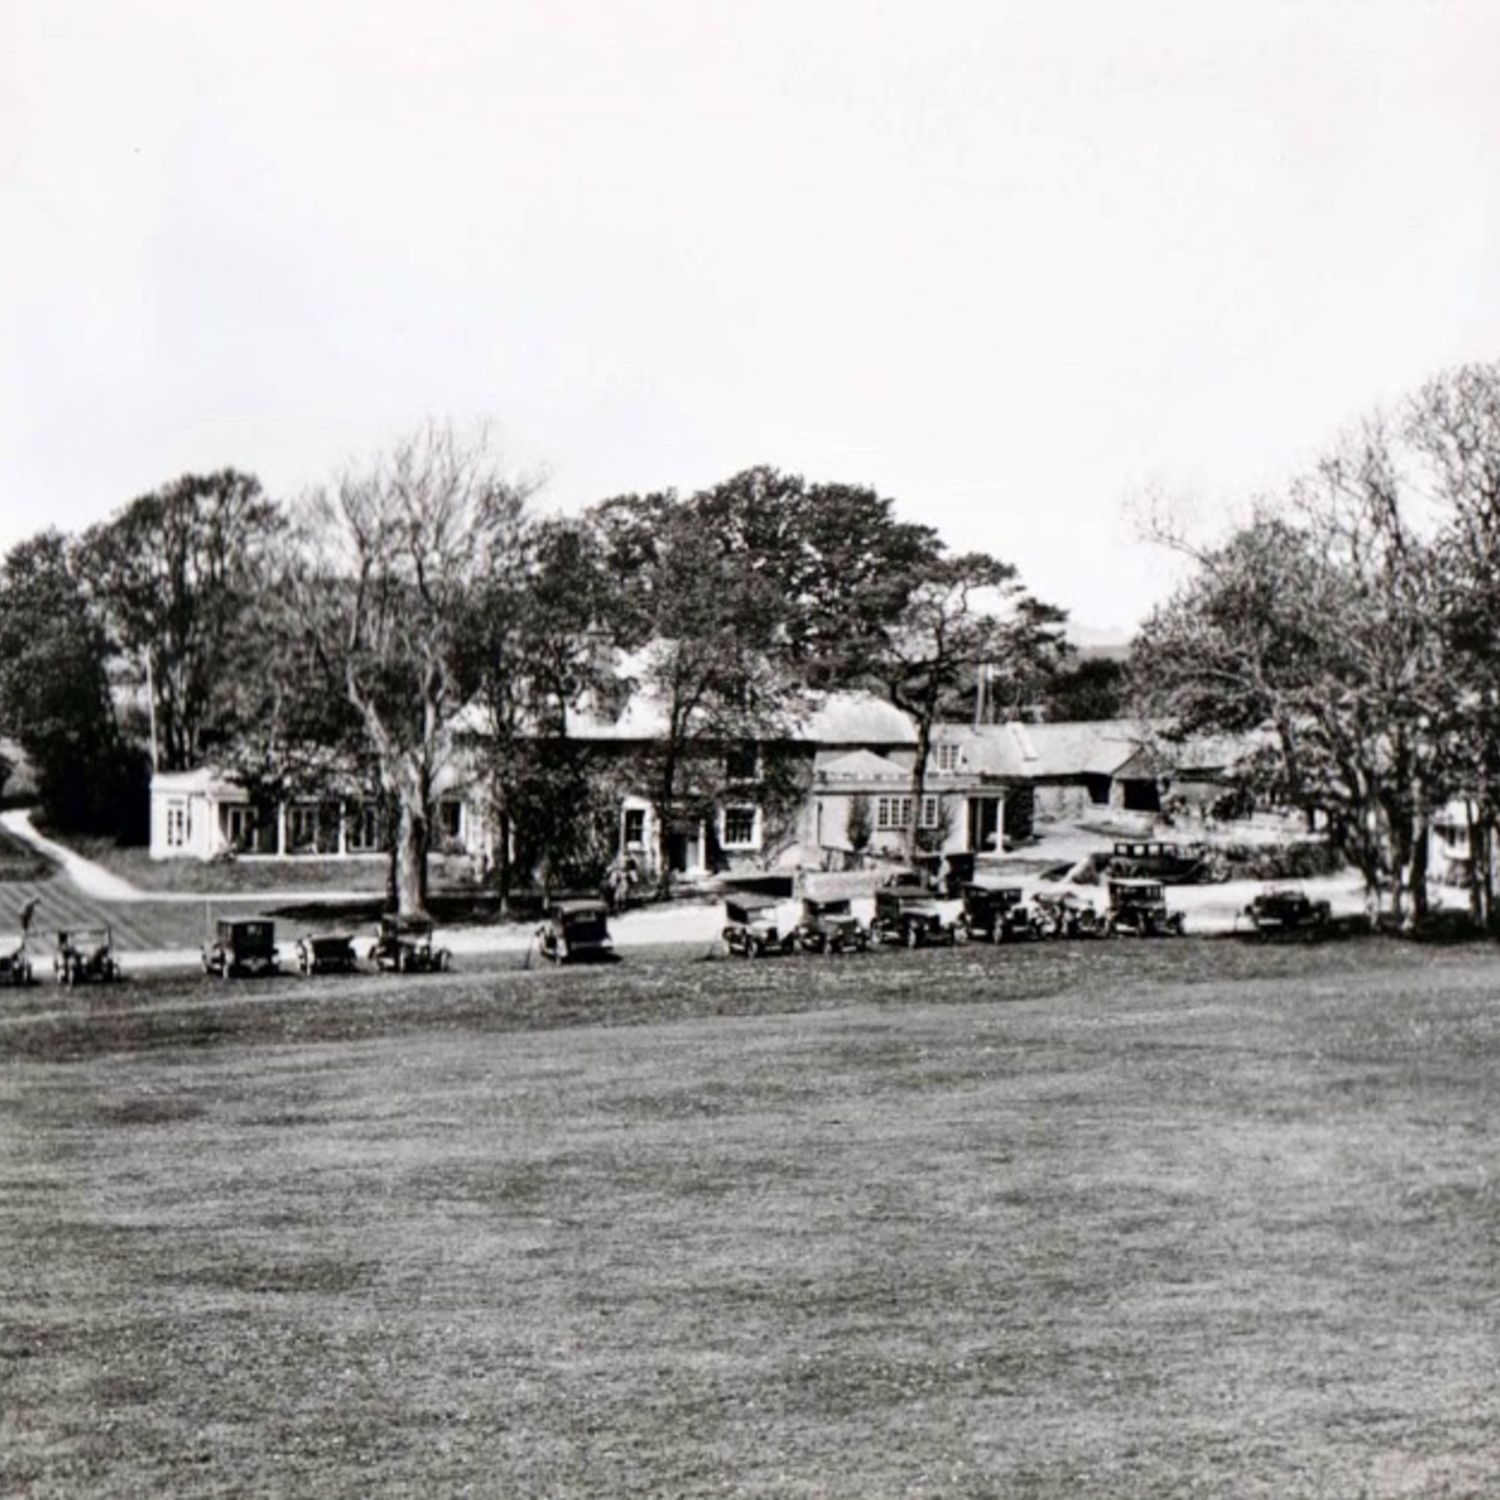 Cars parked on the grass outside the Clubhouse in 1927.